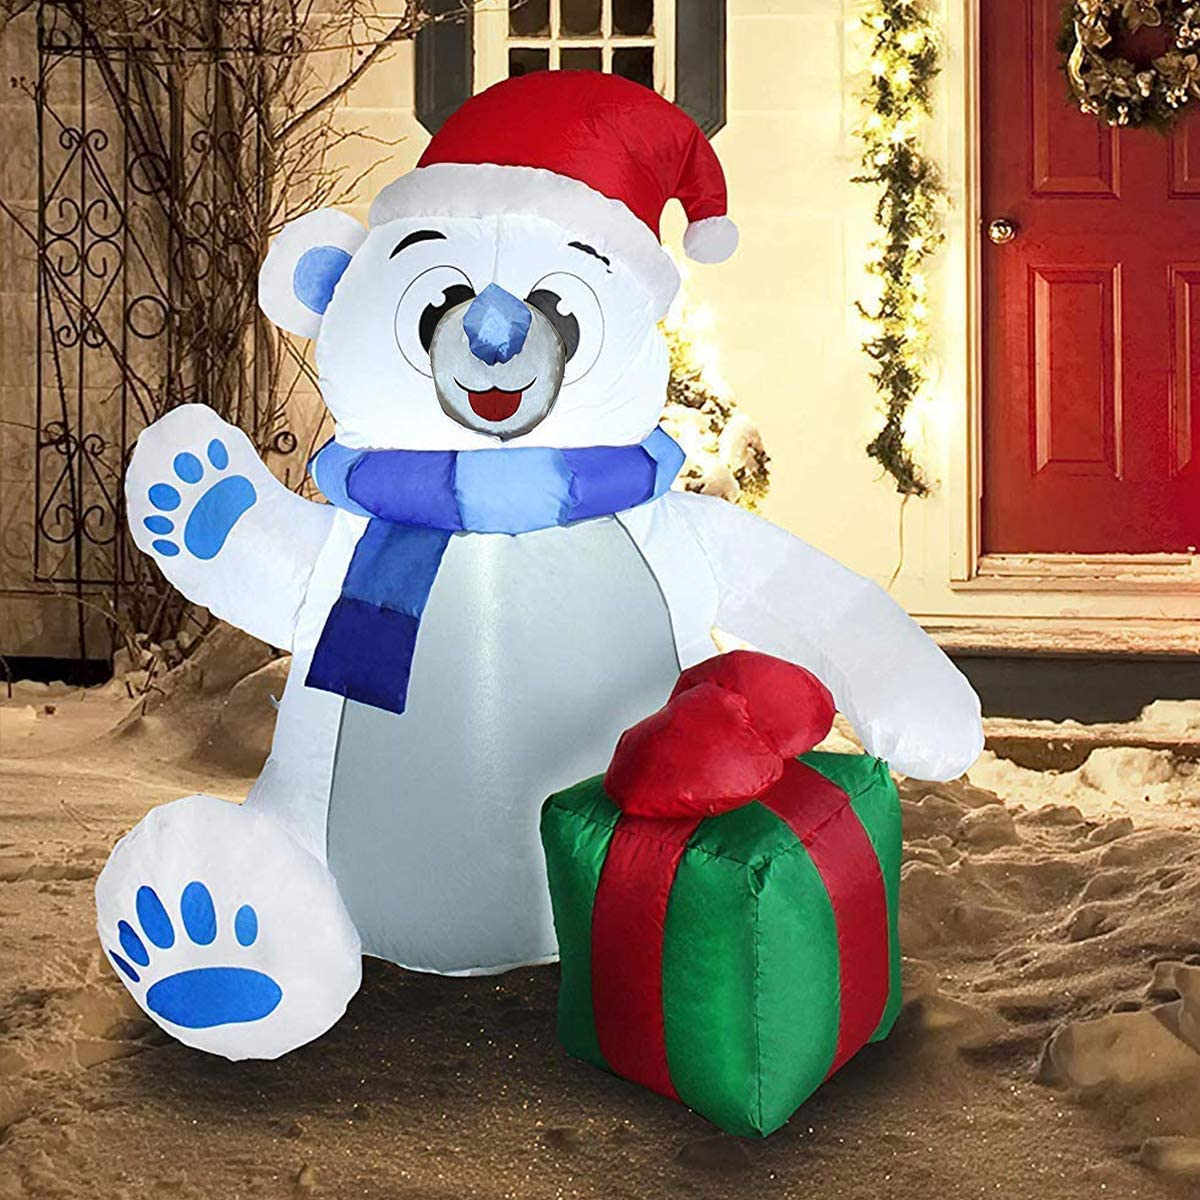 Joiedomi 4 ft Christmas Self Inflatable Polar Bear LED Light Up Giant Blow Up Yard Decoration for Xmas Holiday Indoor/Outdoor Garden Party Favor Supplies Décor.